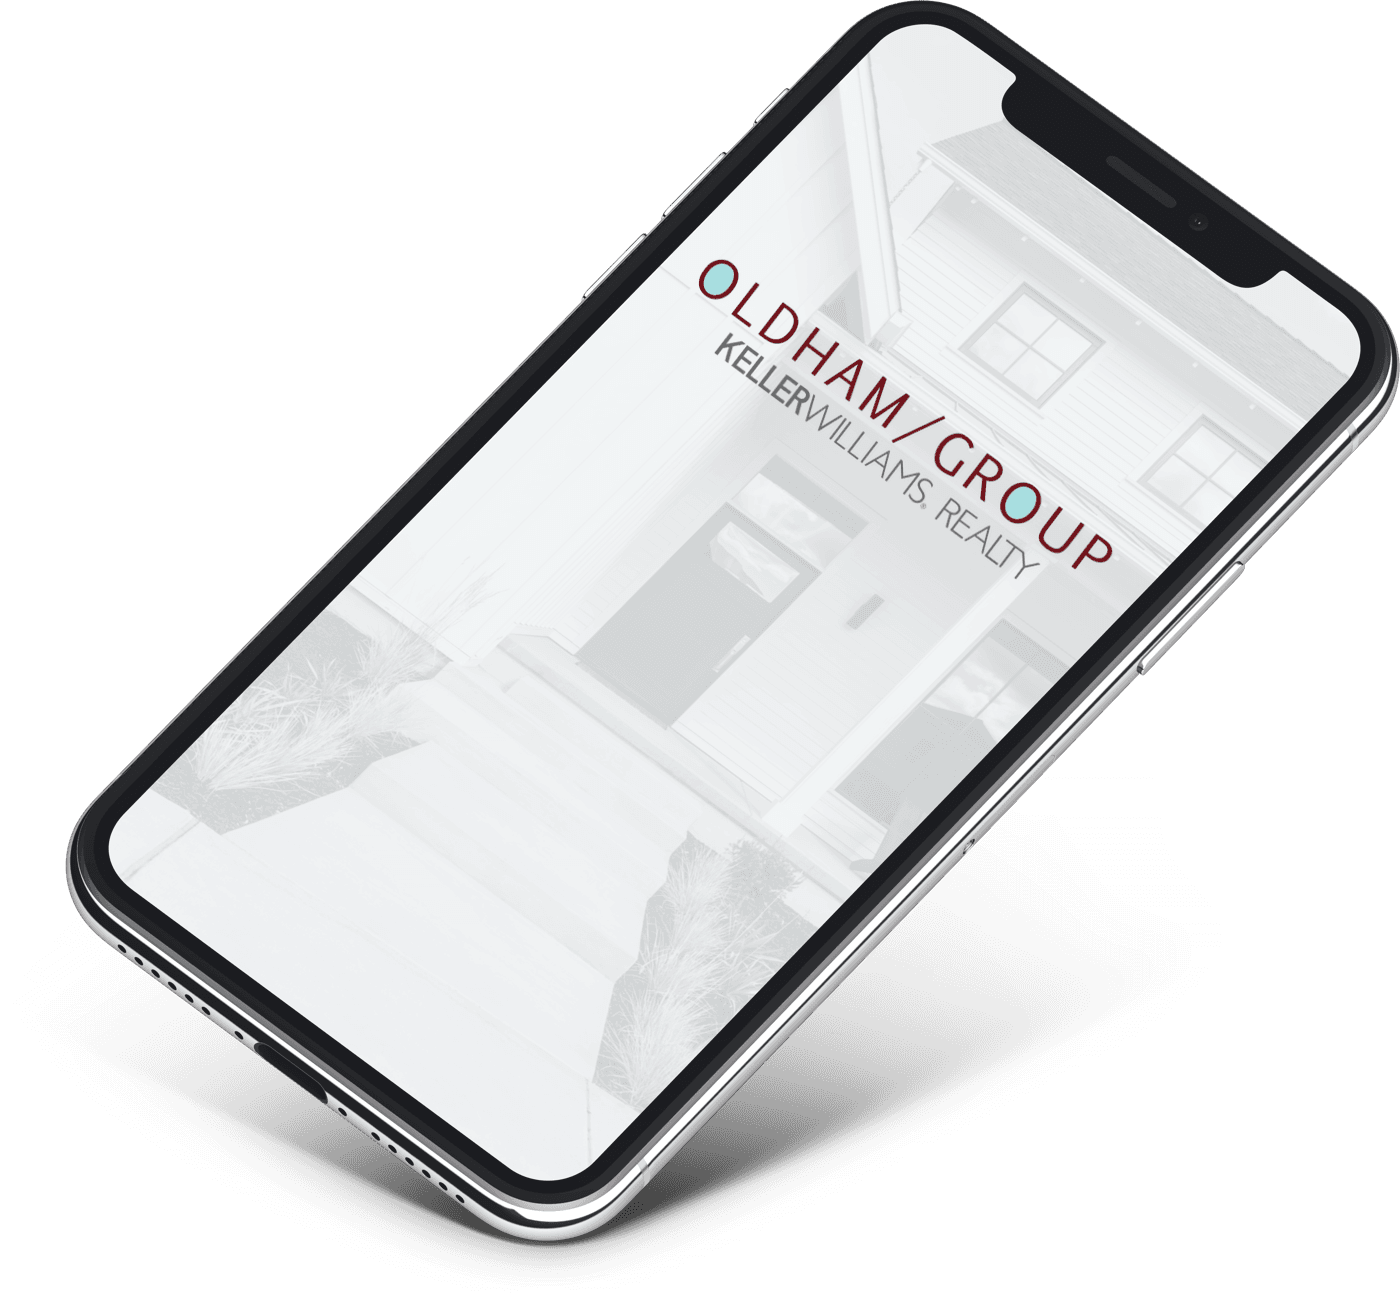 Oldham Group App